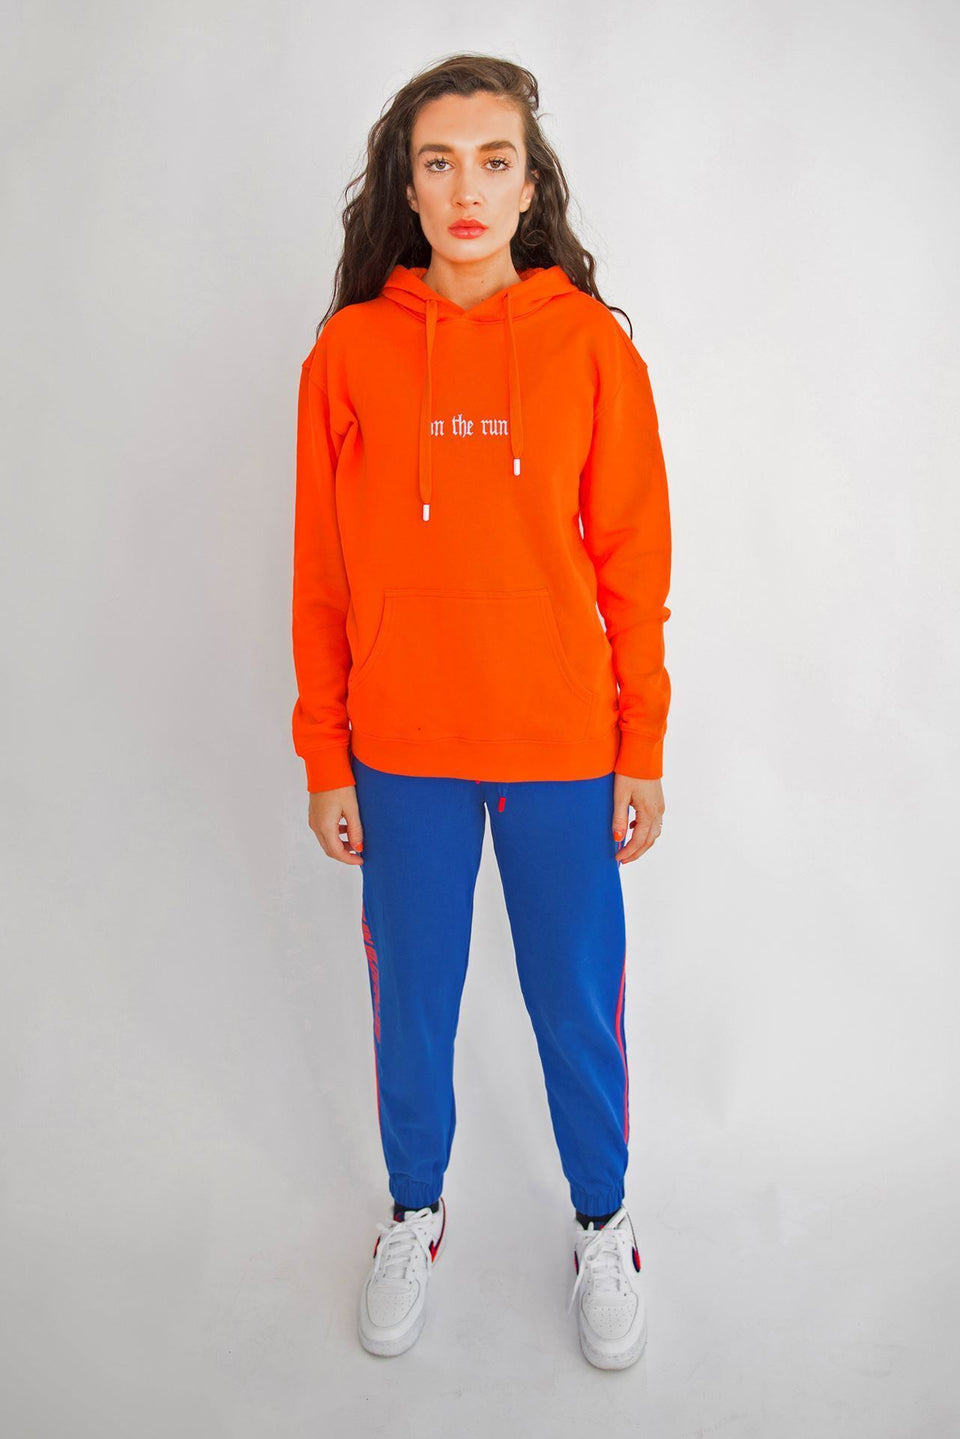 Blue Cherry Sweatpants